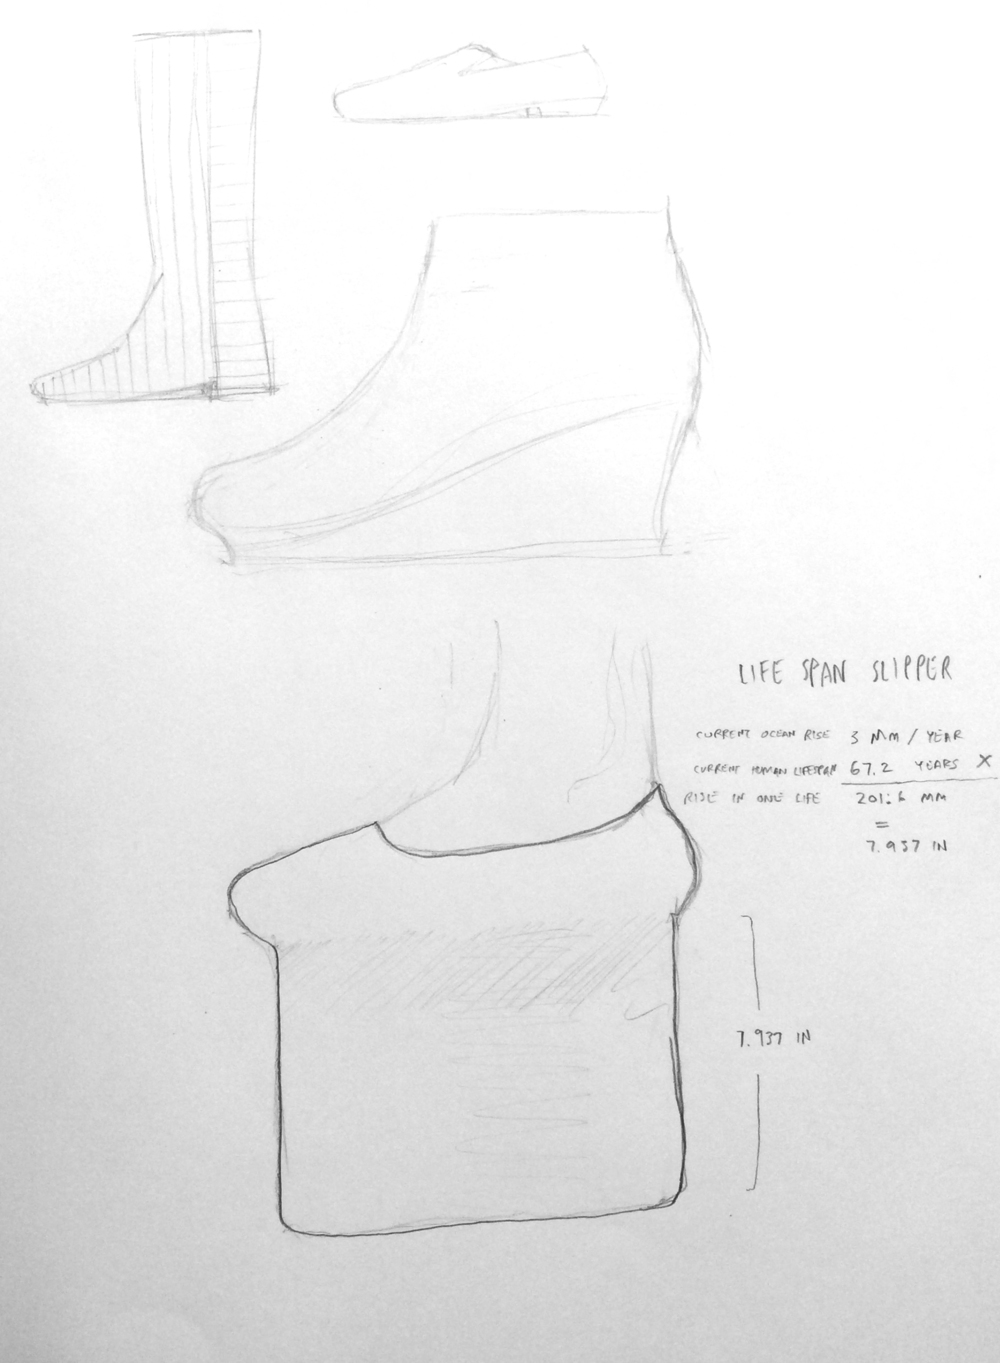 skyerayshoesketch2.jpg